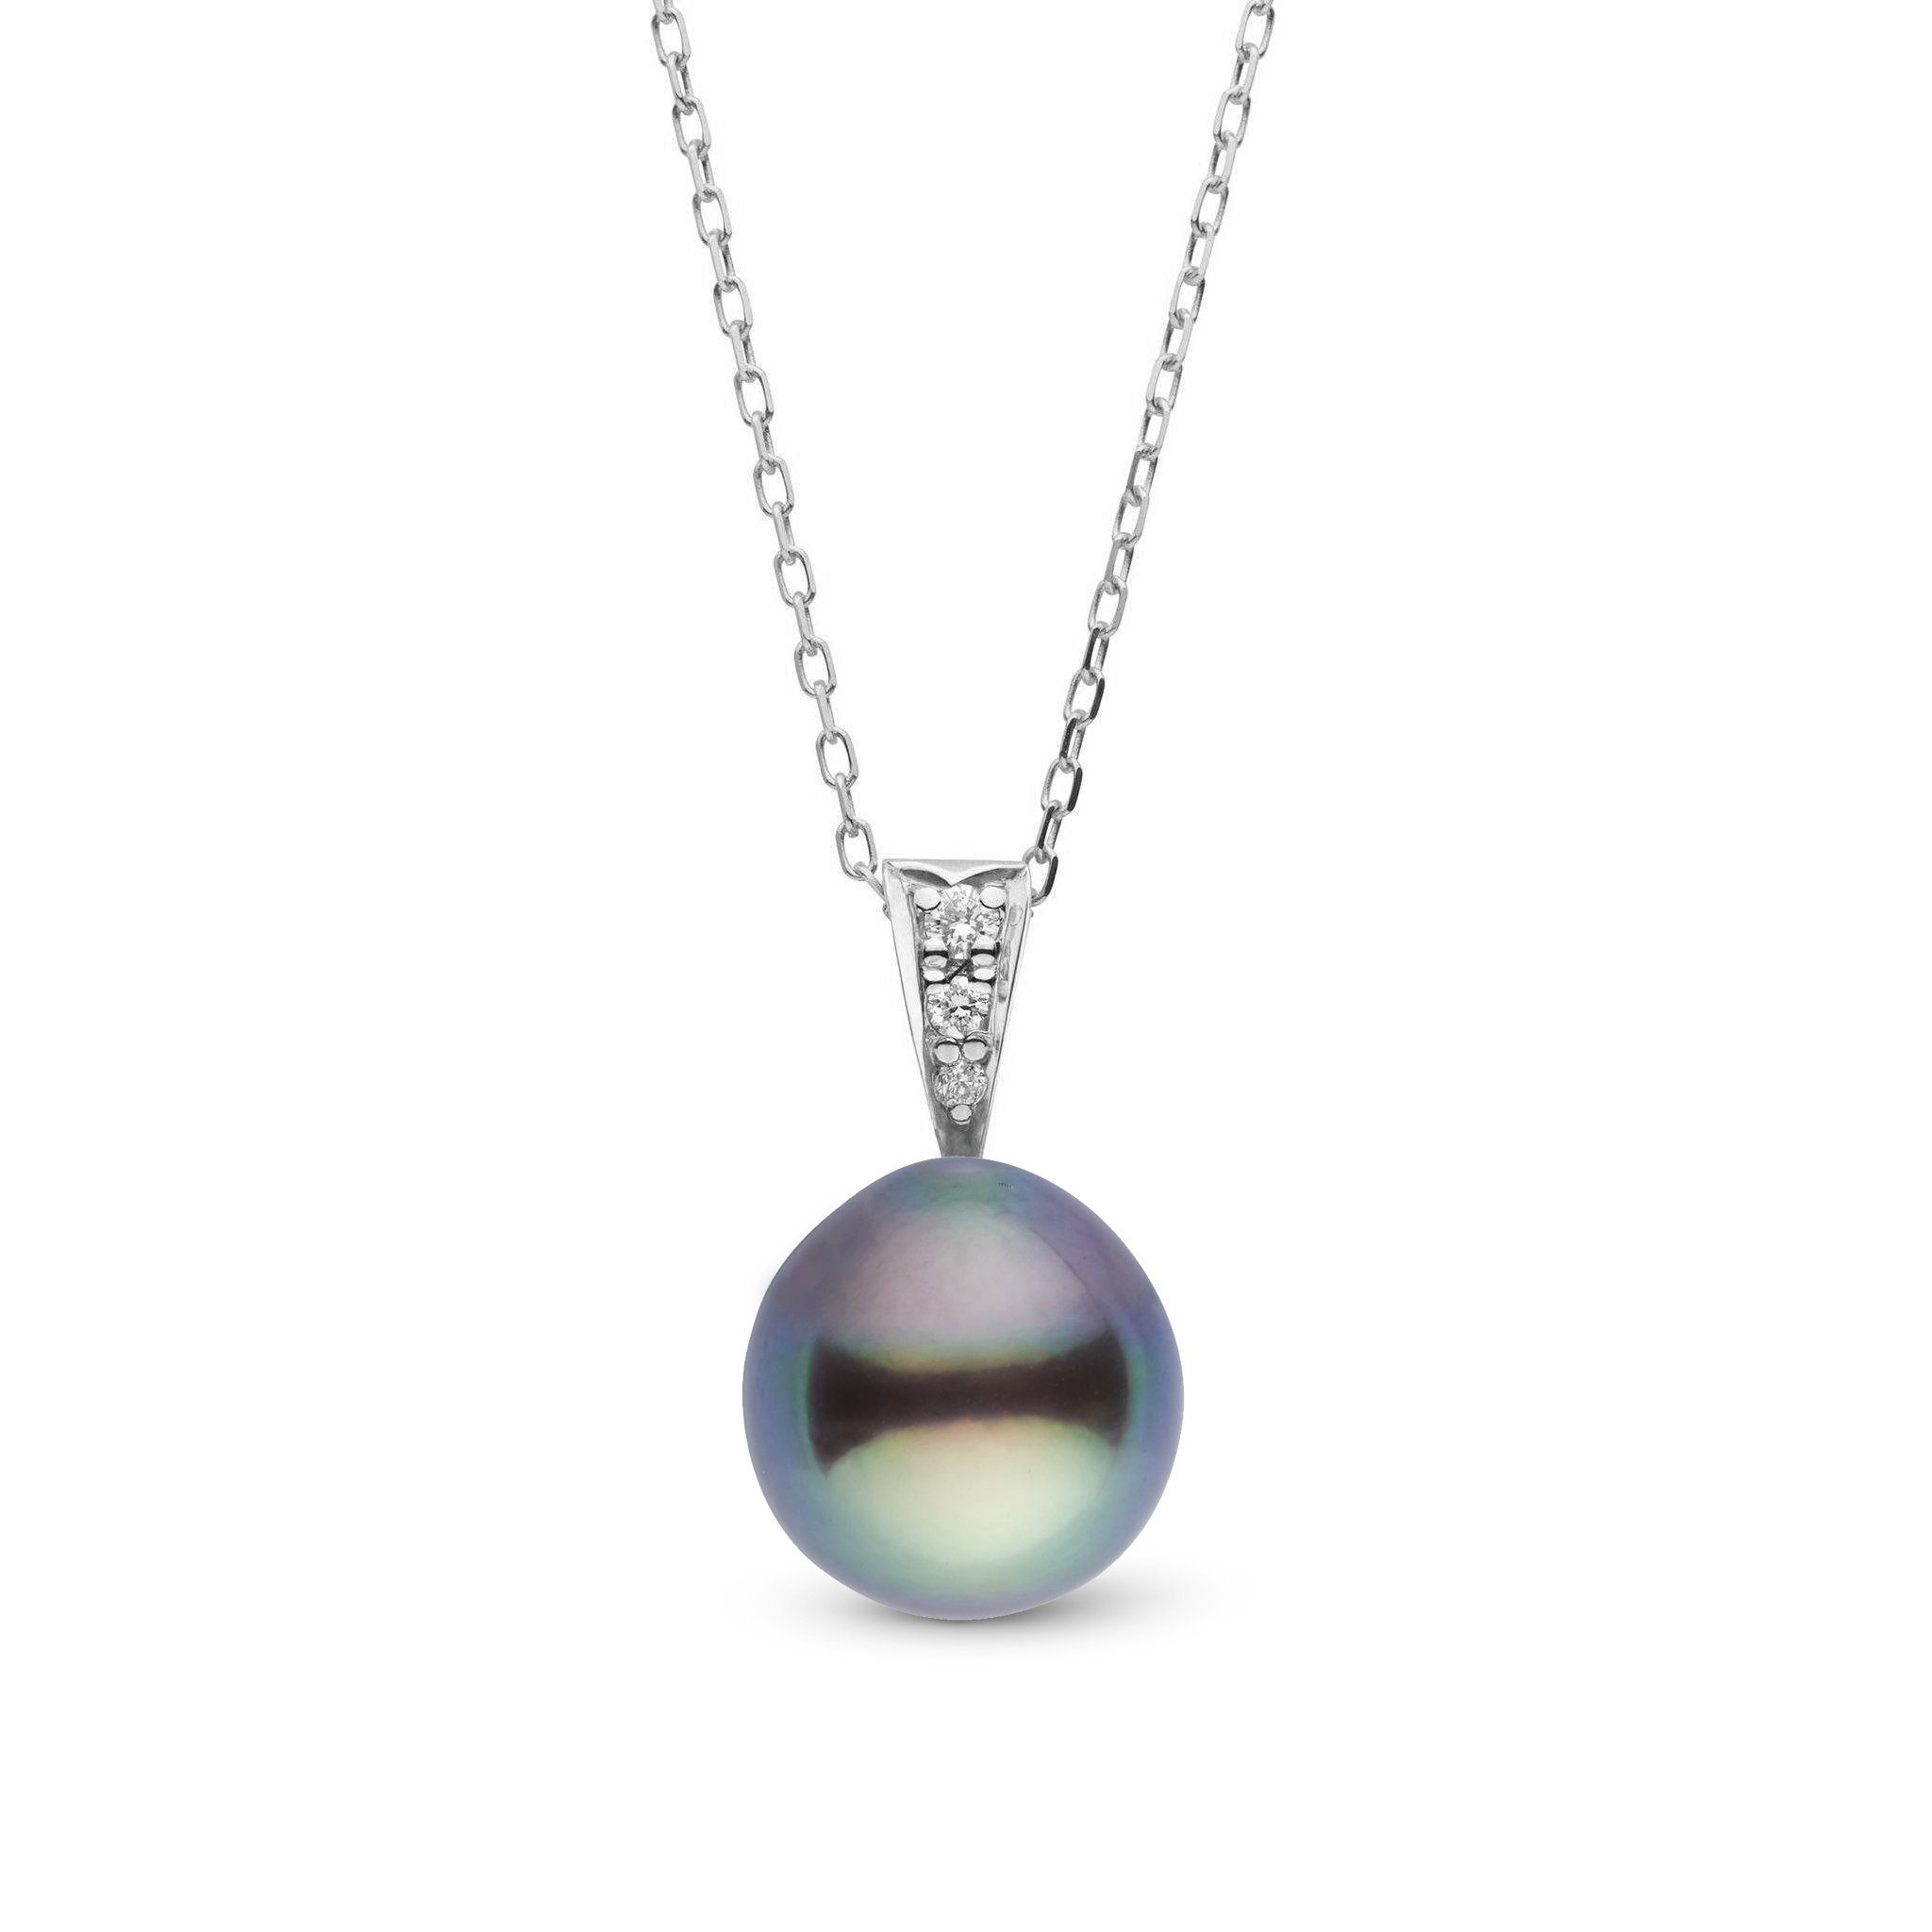 Desire Collection 8.0-9.0 mm Drop Tahitian Pearl & Diamond Pendant